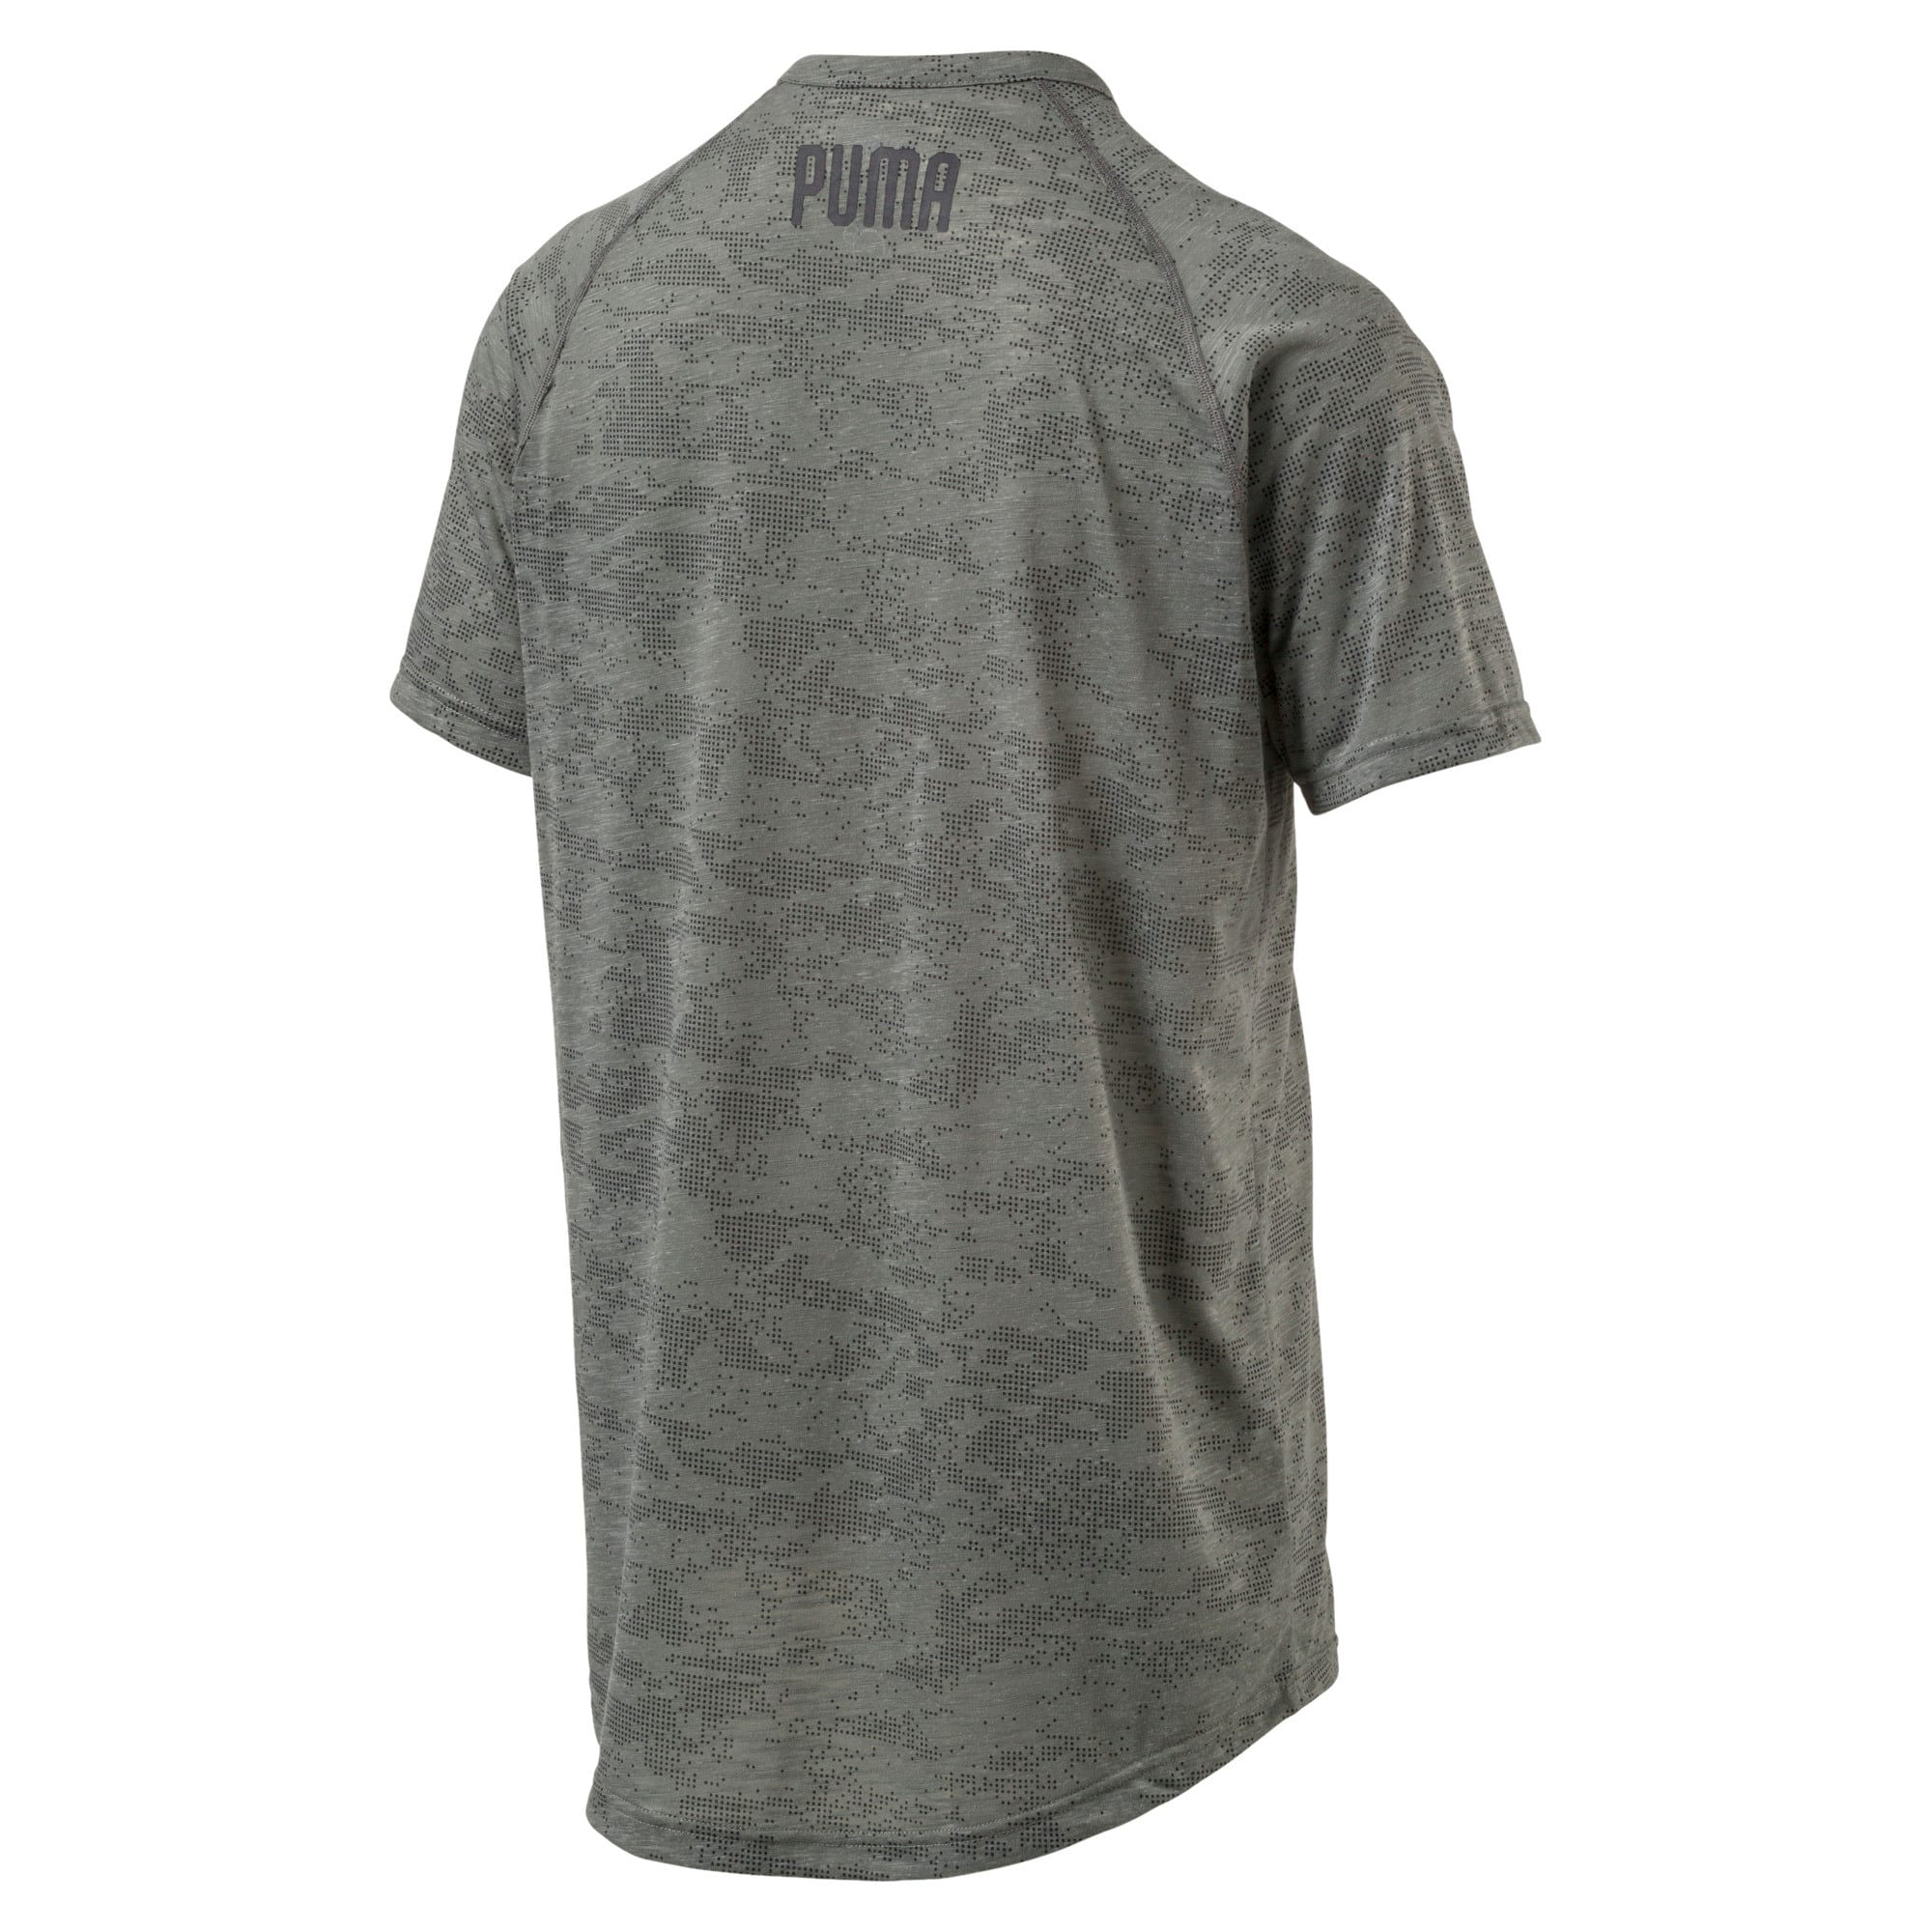 drirelease Men's Short Sleeve Training Top, Castor Gray Heather, large-IND